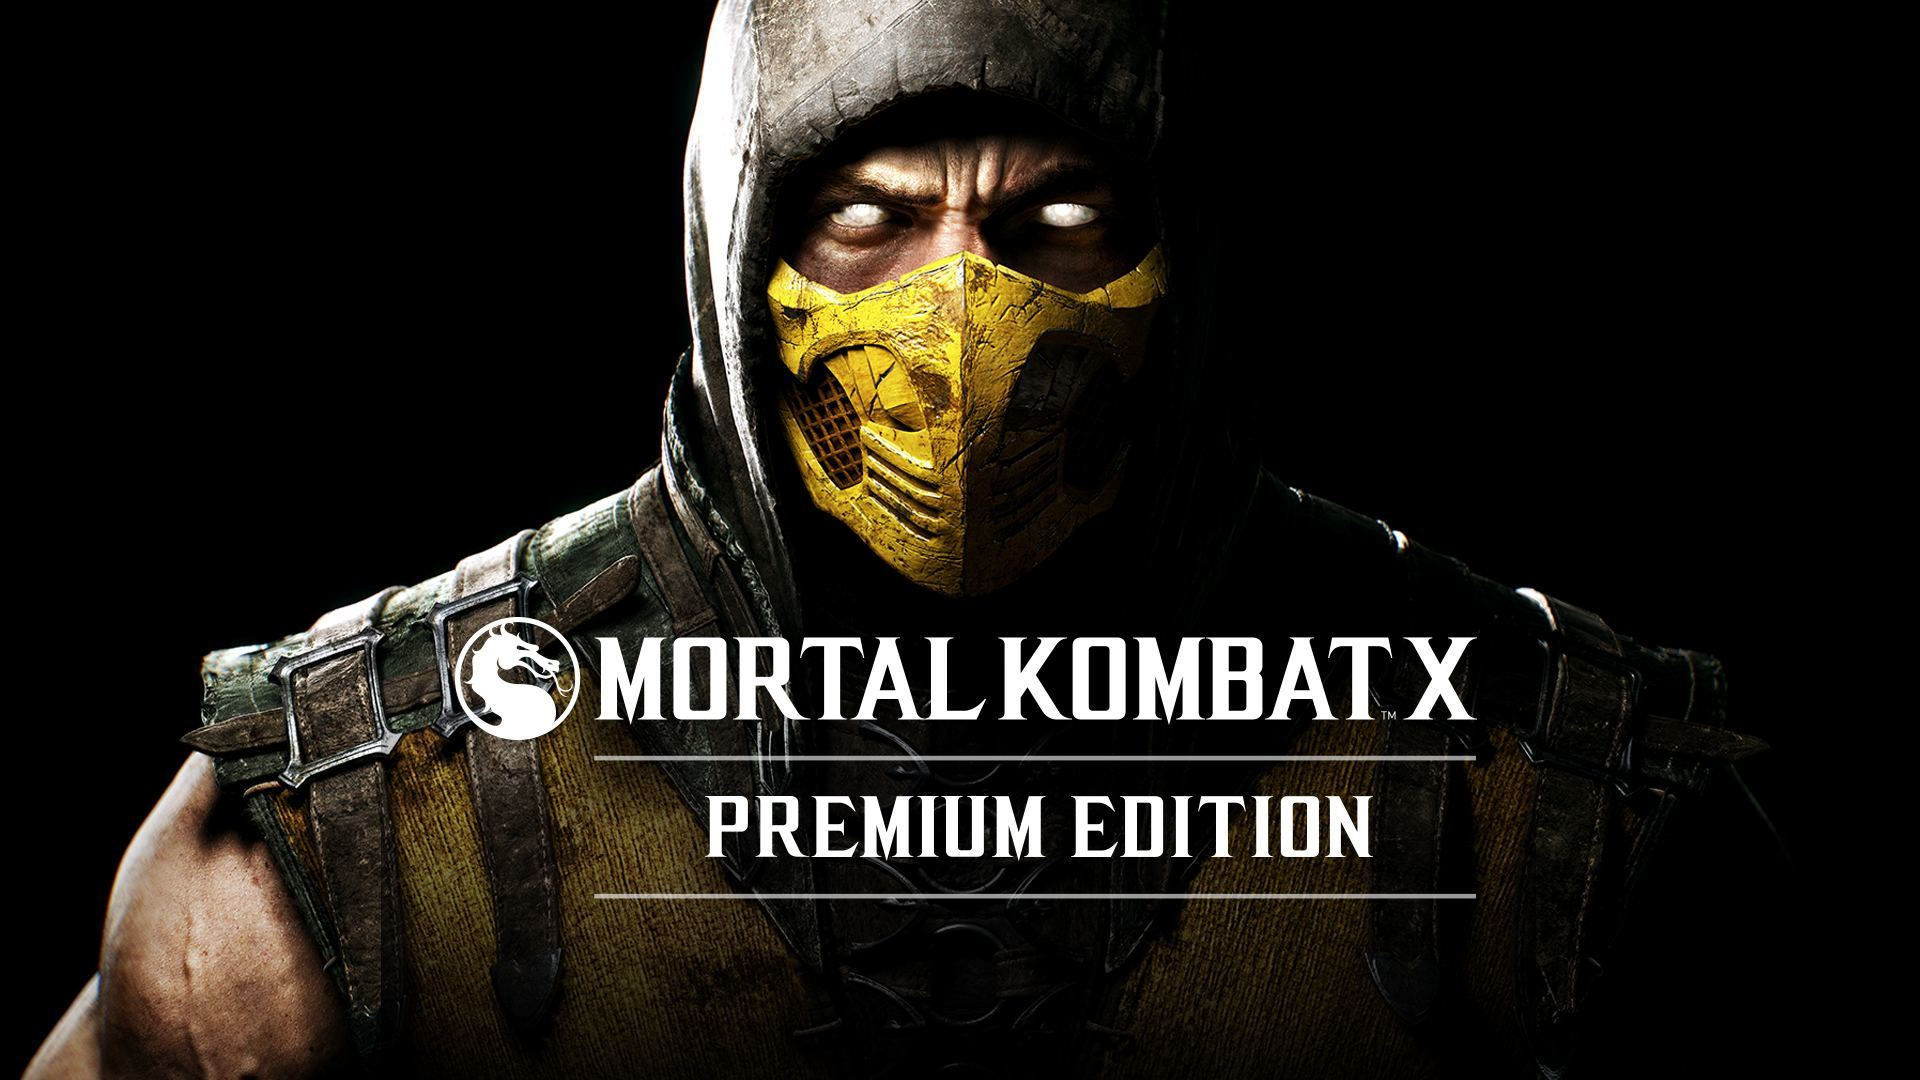 Mortal Kombat X Premium Edition | PC Steam Game | Fanatical